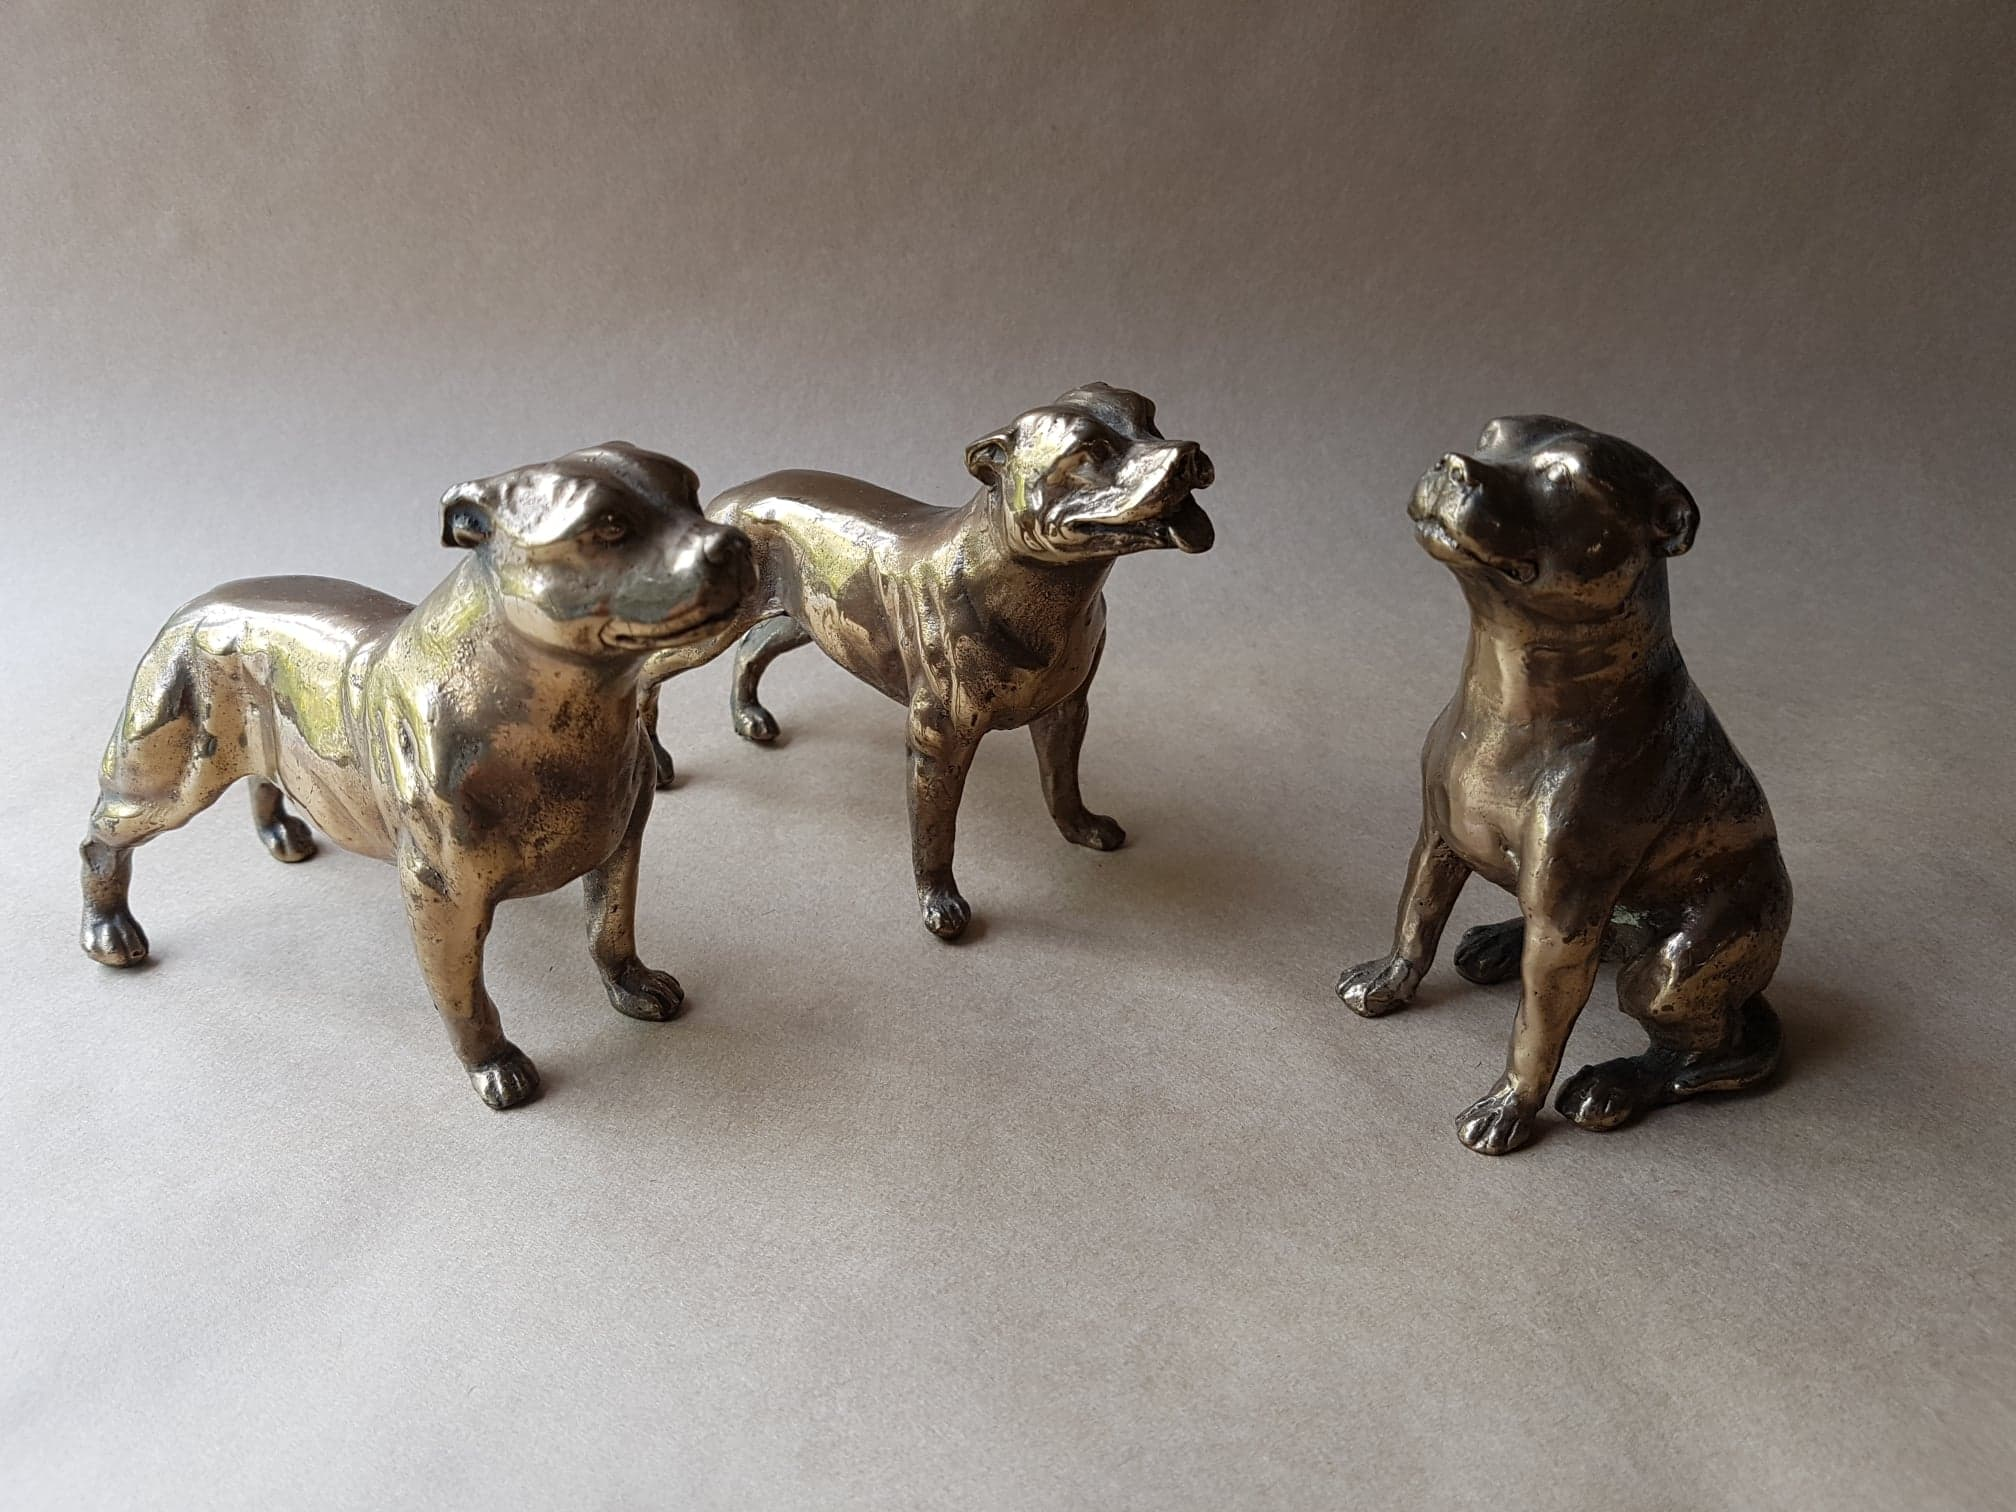 Staffordshire Bull Terrier Figurines